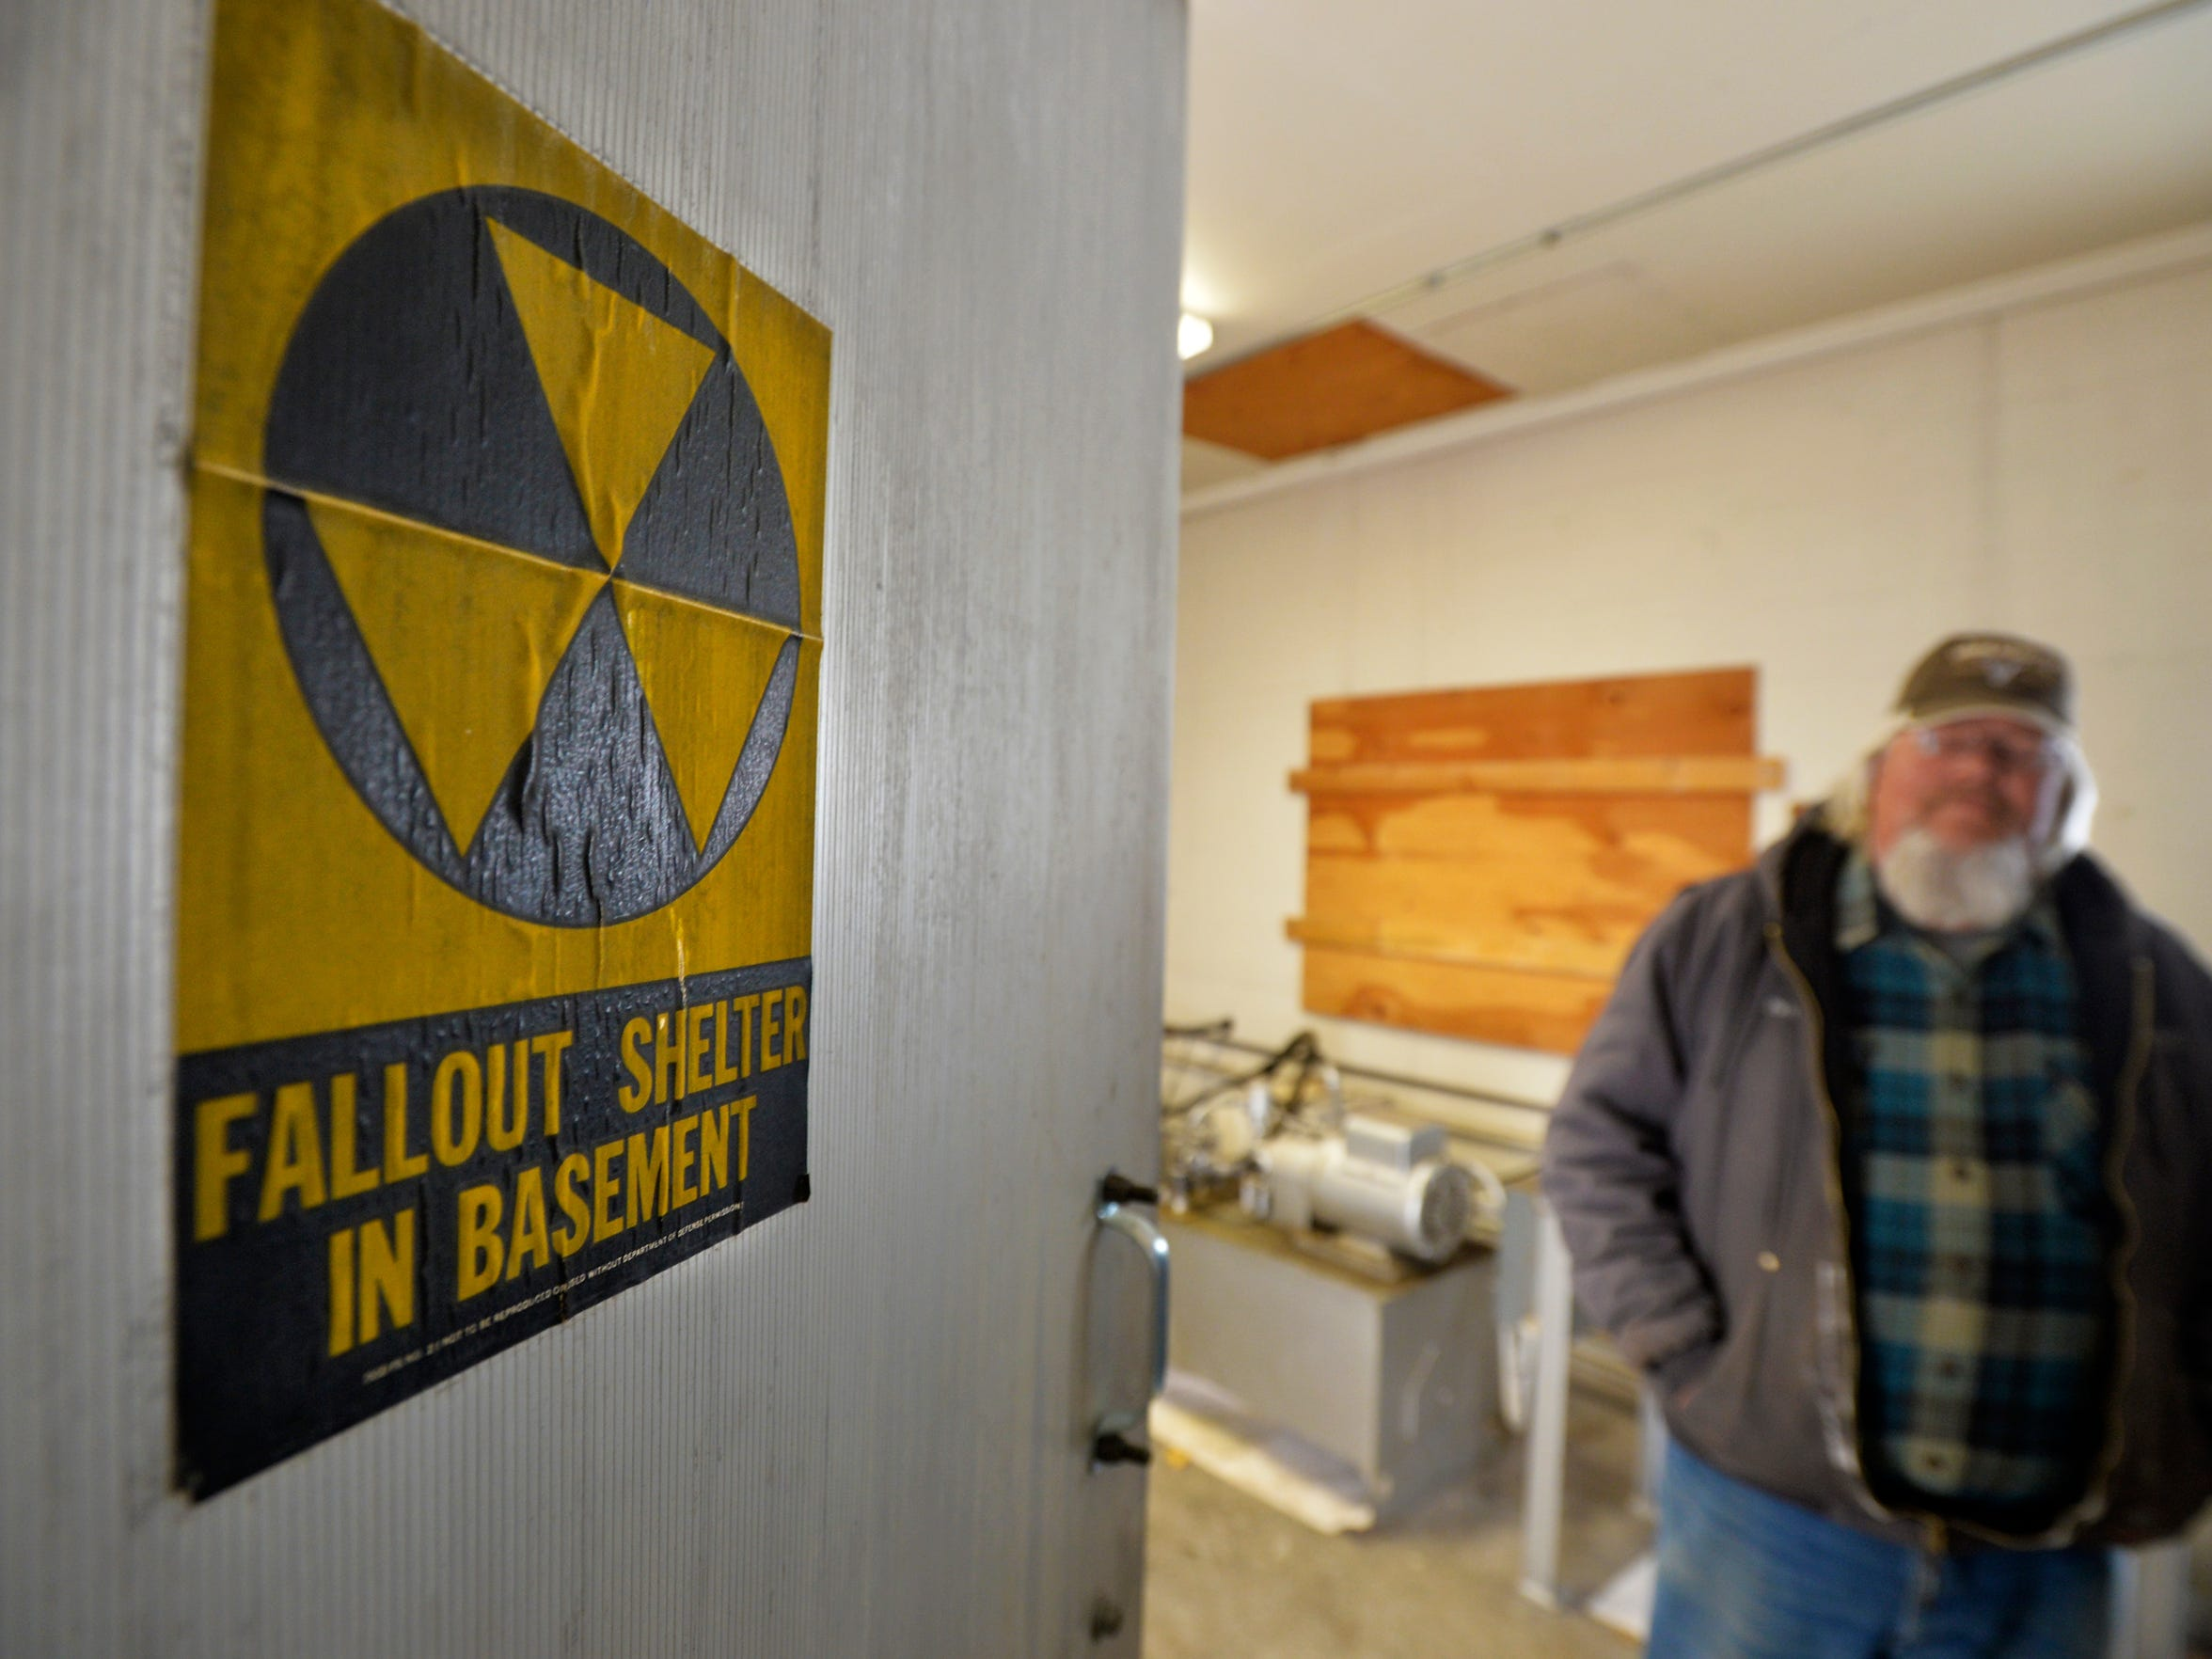 The concrete Gibson Dam gatehouse was designated as a fallout shelter.